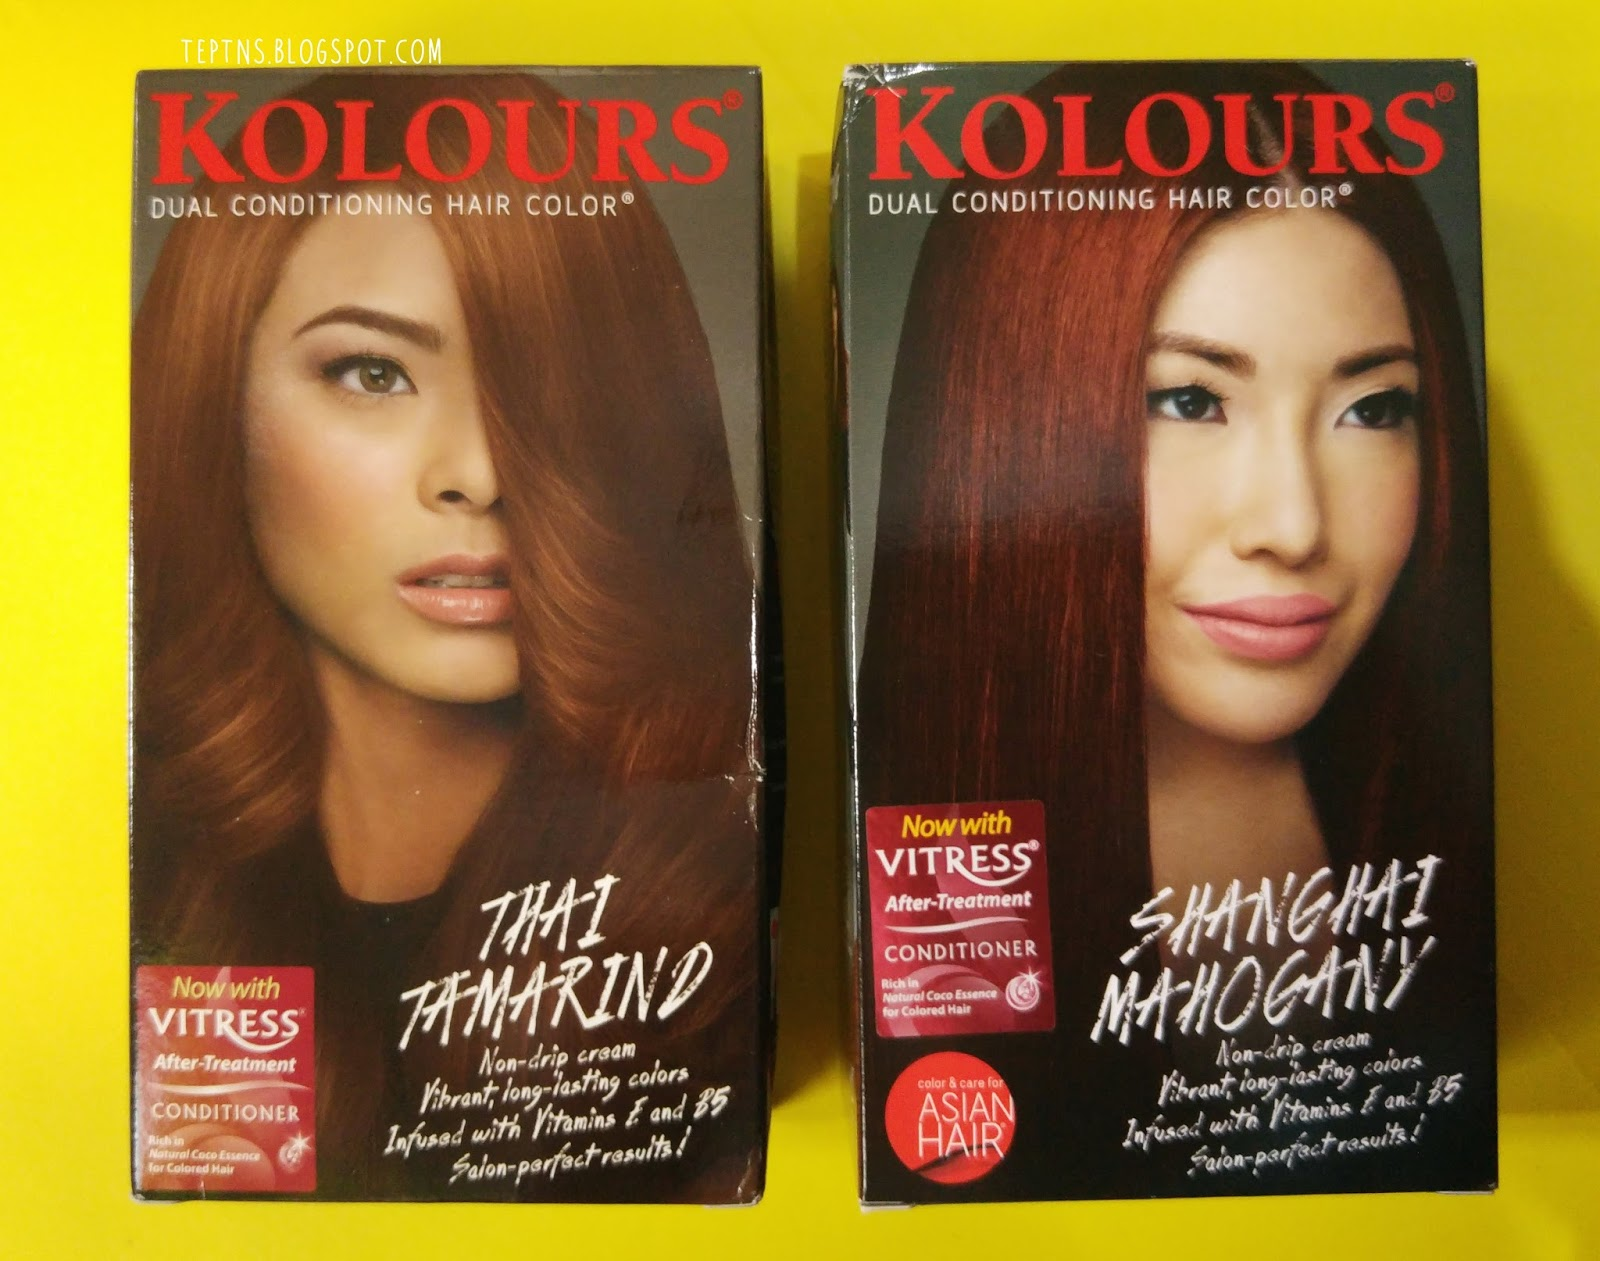 Review Kolours Dual Conditioning Hair Color In Shanghai Mahogany